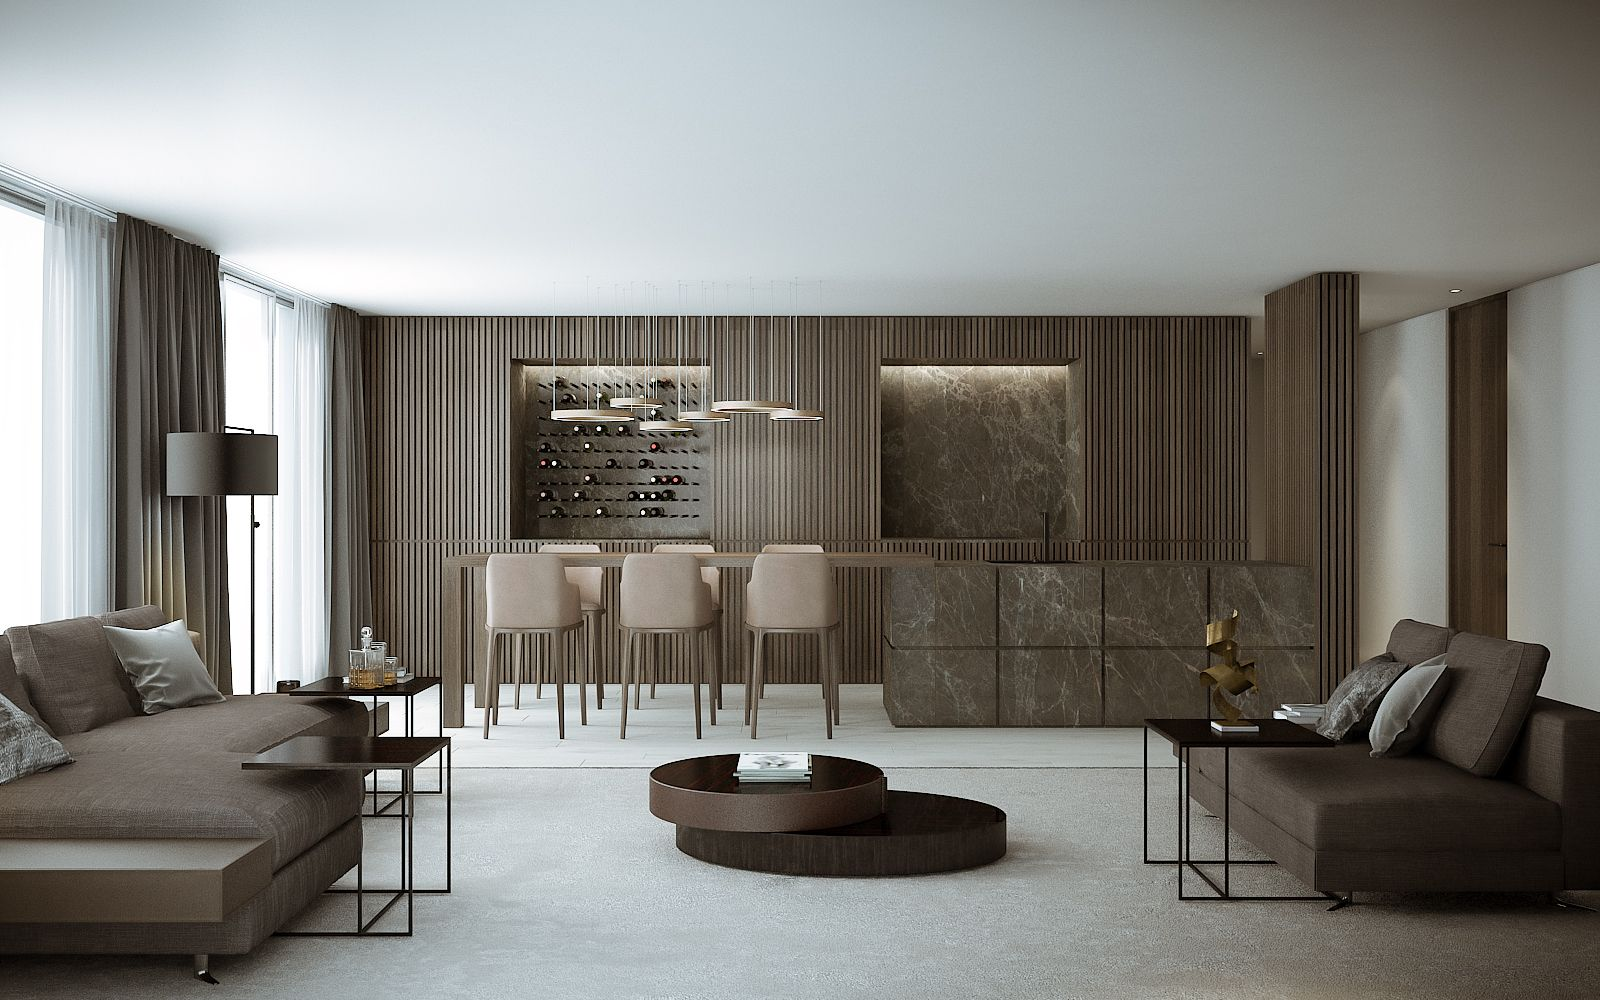 Zurich Family Home High Quality Render And Virtual Tour